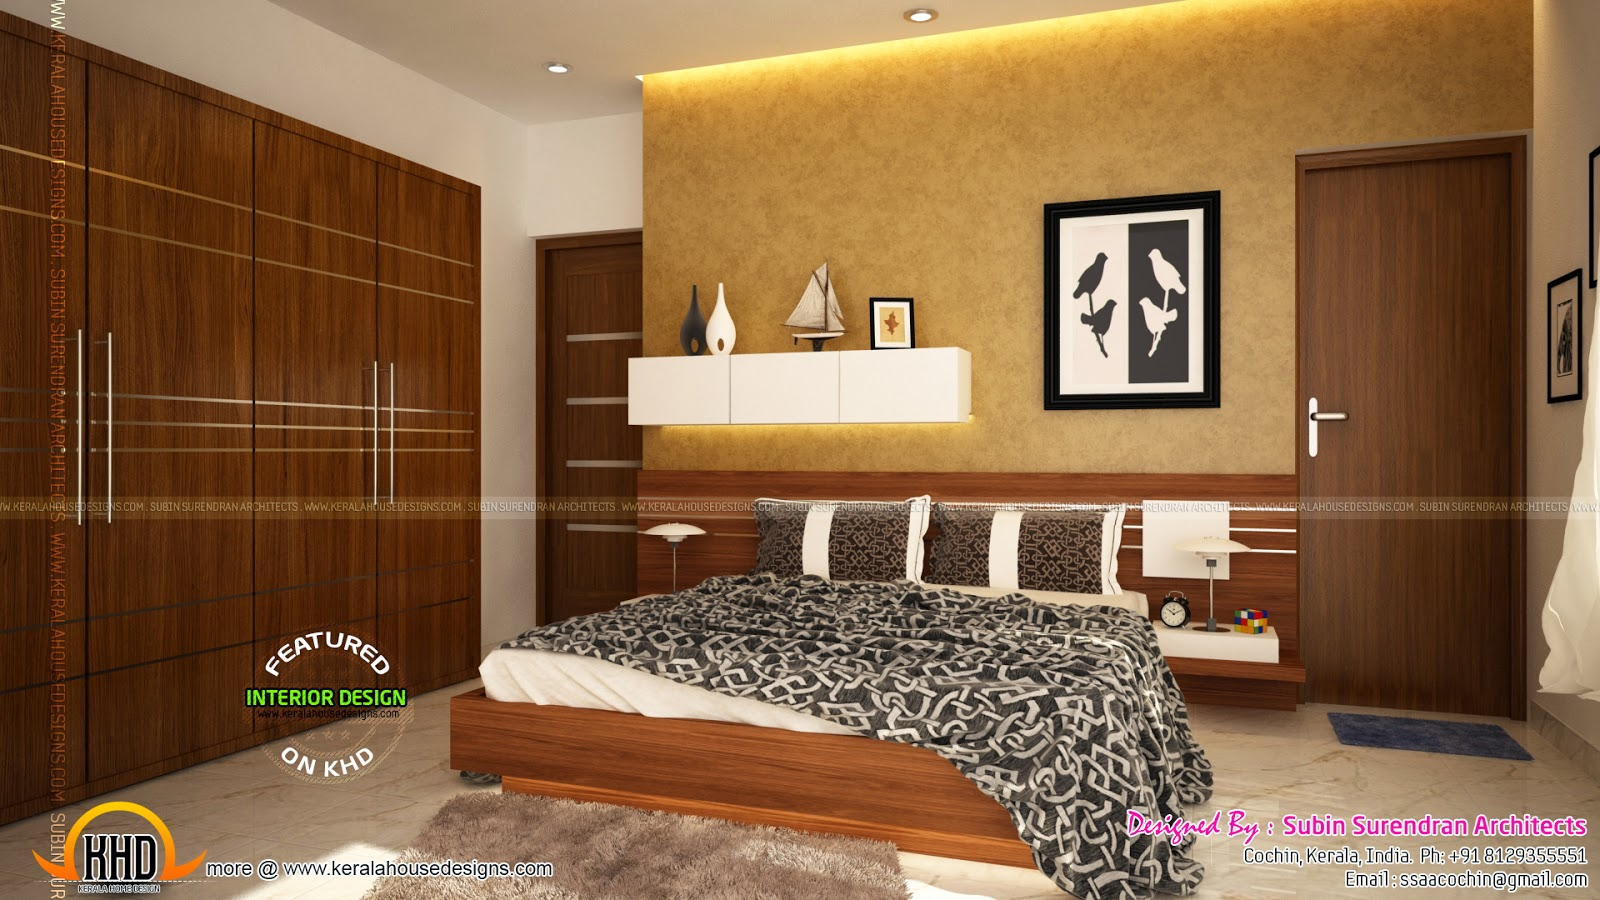 Kerala style low cost double storied home keralahousedesigns for Interior design images for bedrooms